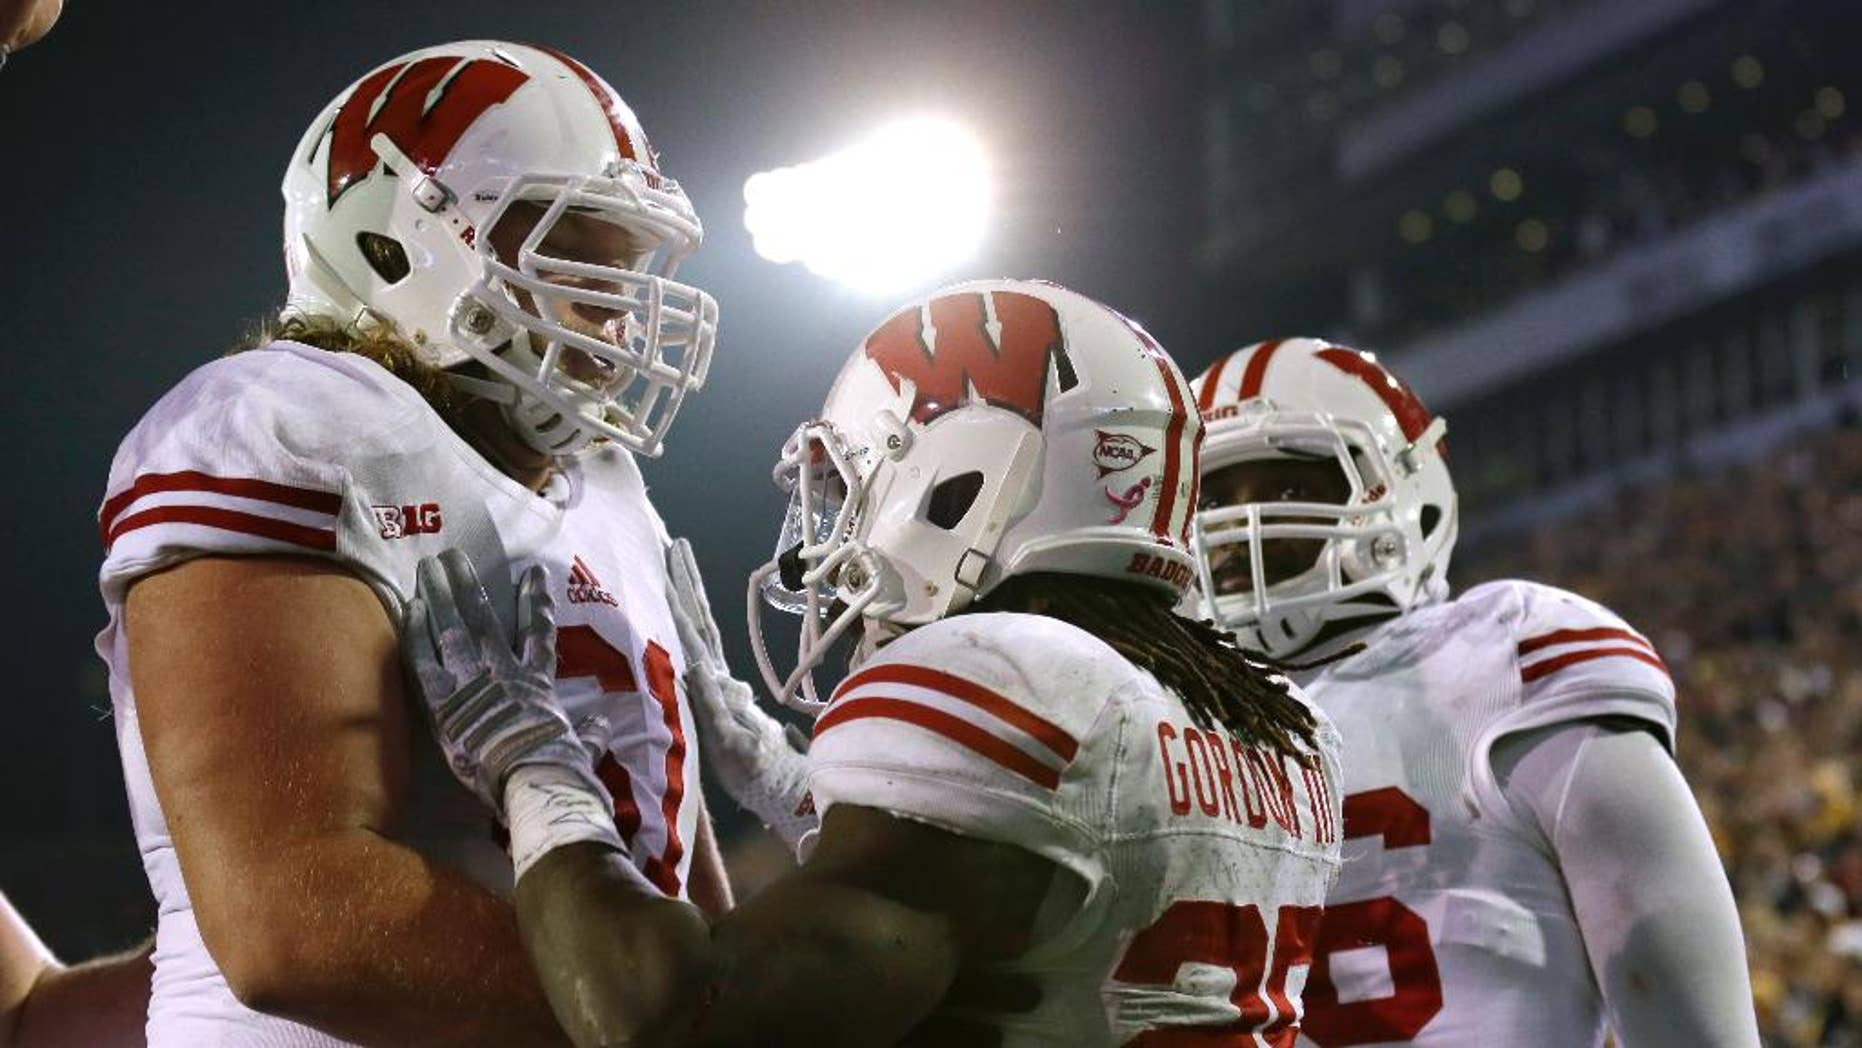 Wisconsin running back Melvin Gordon, center, celebrates with teammates after scoring on a 23-yard touchdown run in the second half of an NCAA college football game against Iowa, Saturday, Nov. 22, 2014, in Iowa City, Iowa. Wisconsin won 26-24. (AP Photo/Charlie Neibergall)